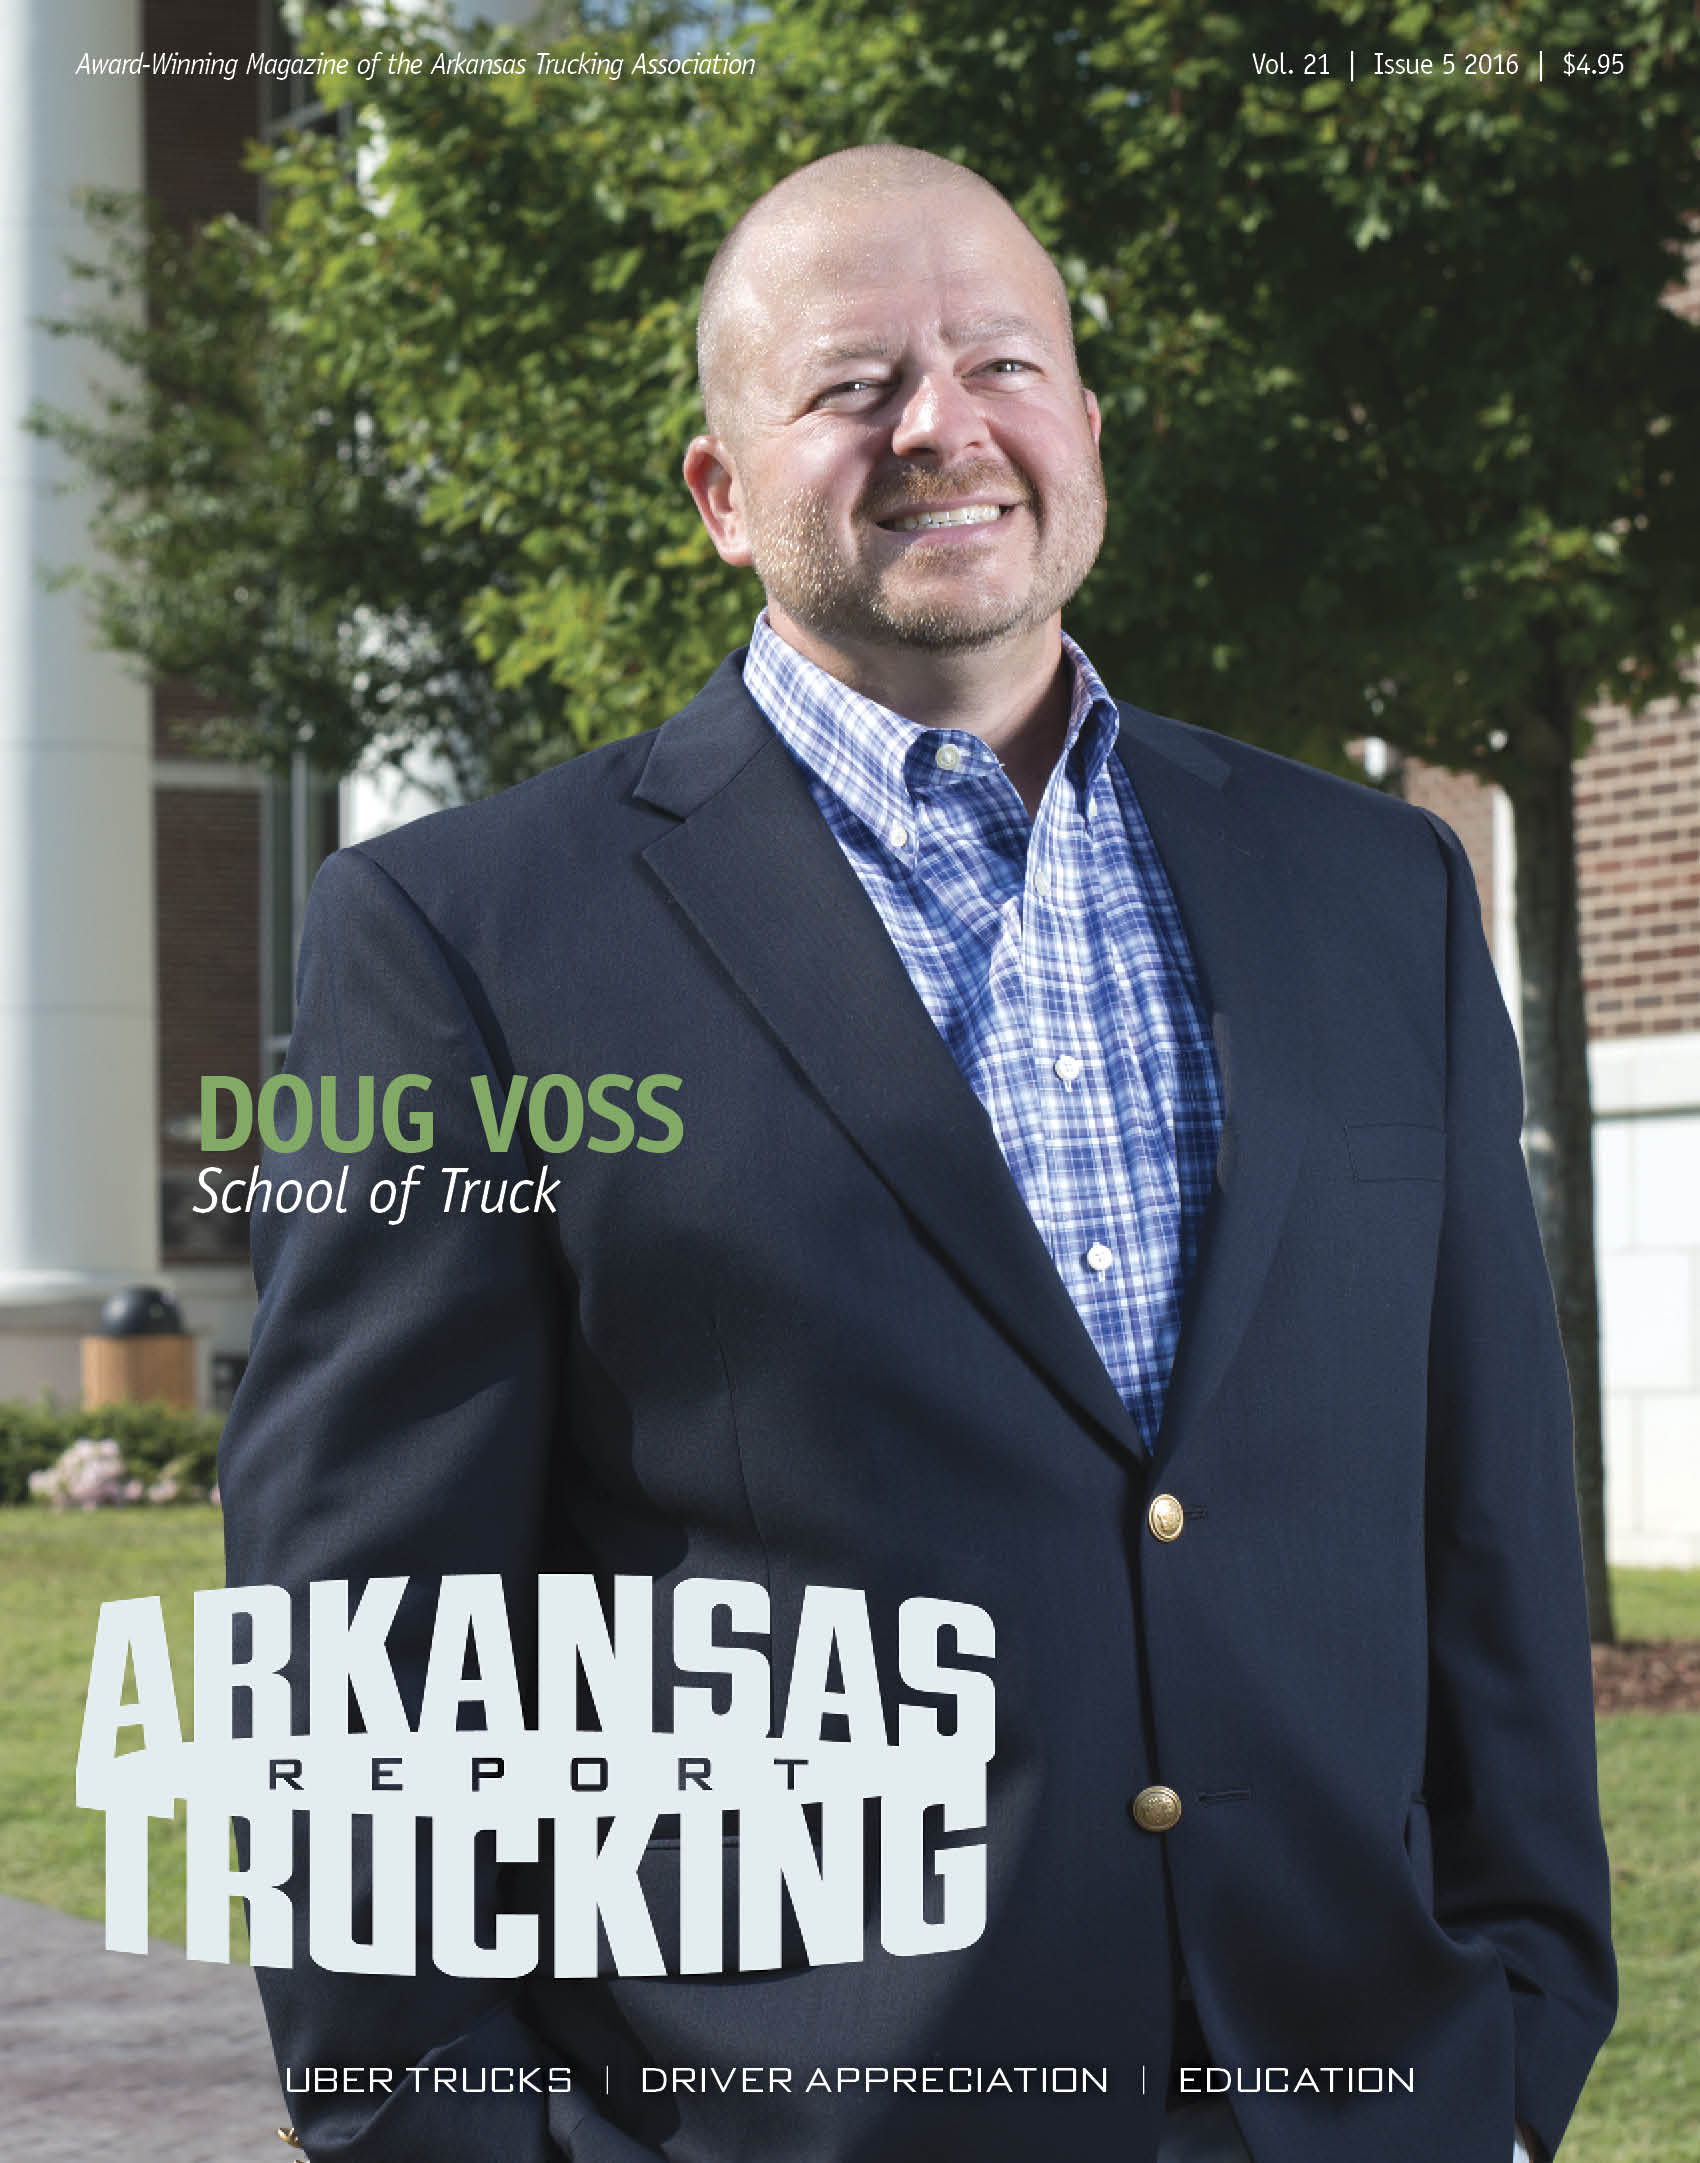 Arkansas Trucking Report- Vol. 21 Issue 5